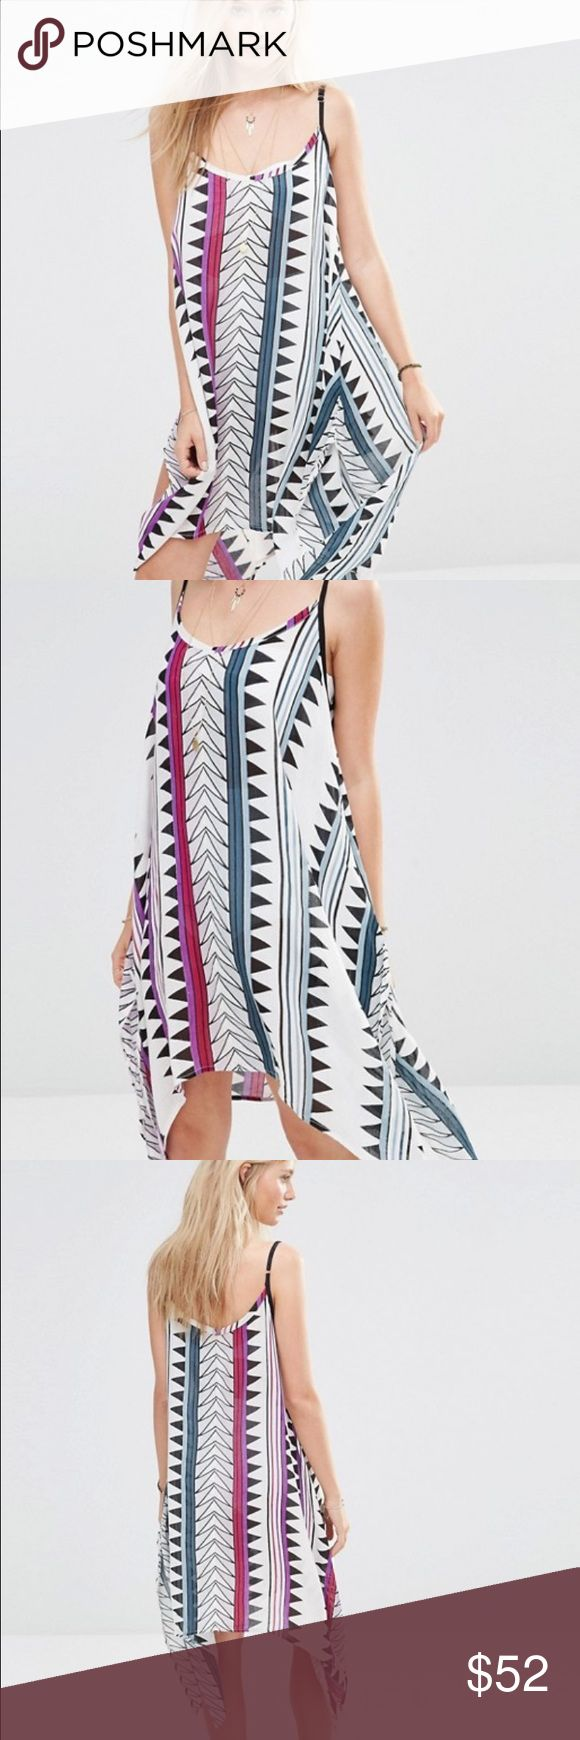 ☀️ASOS Printed Mini Beach Dress☀️ Look sizzling in this White Printed flowy beach dress | Asymmetrical cut for added beauty | New tags attached ASOS Dresses Mini